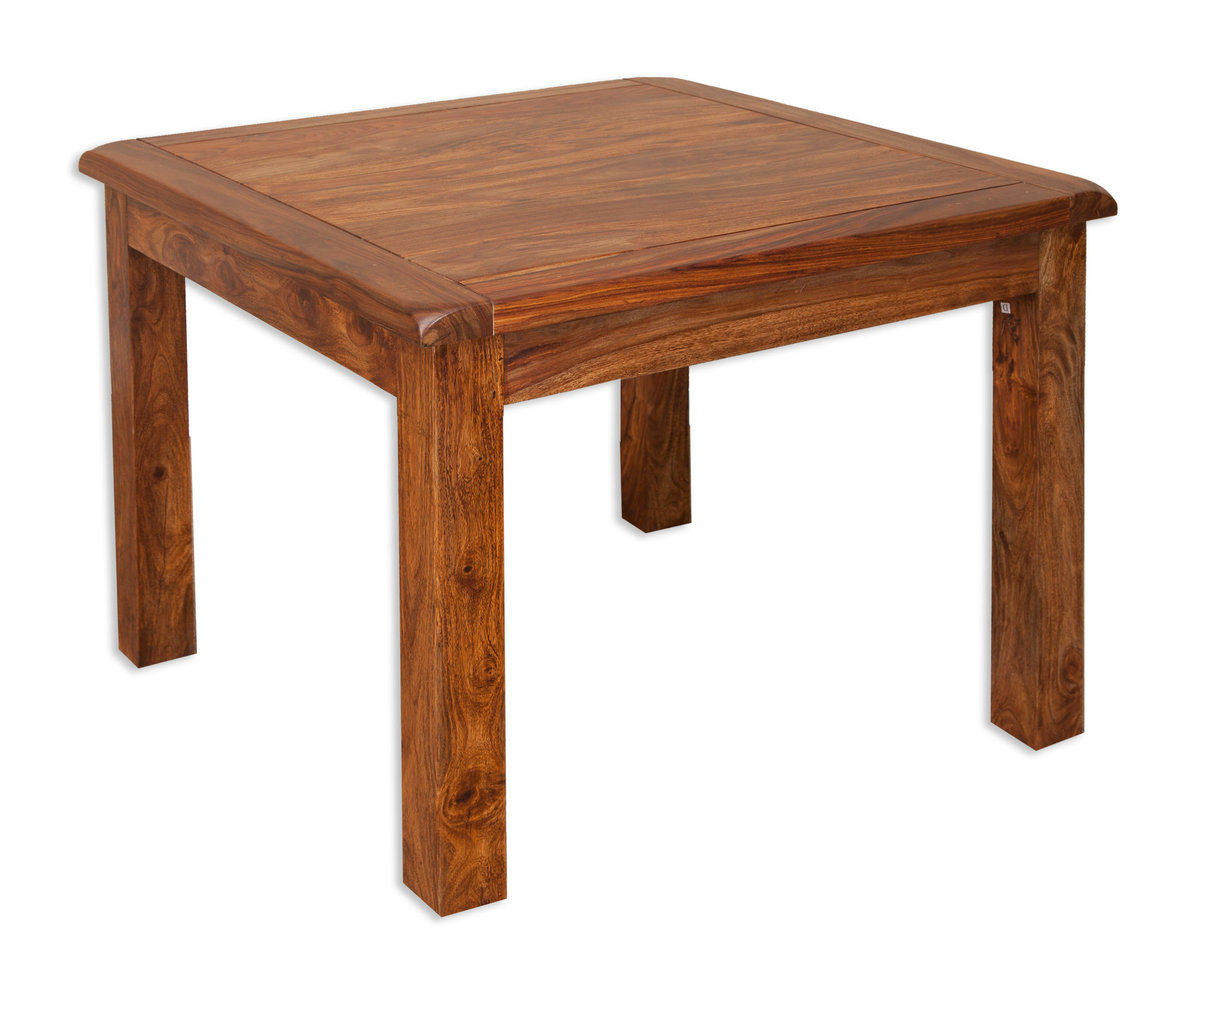 Dining table 90x90 quality indian and oak furniture for Table exterieur 90x90